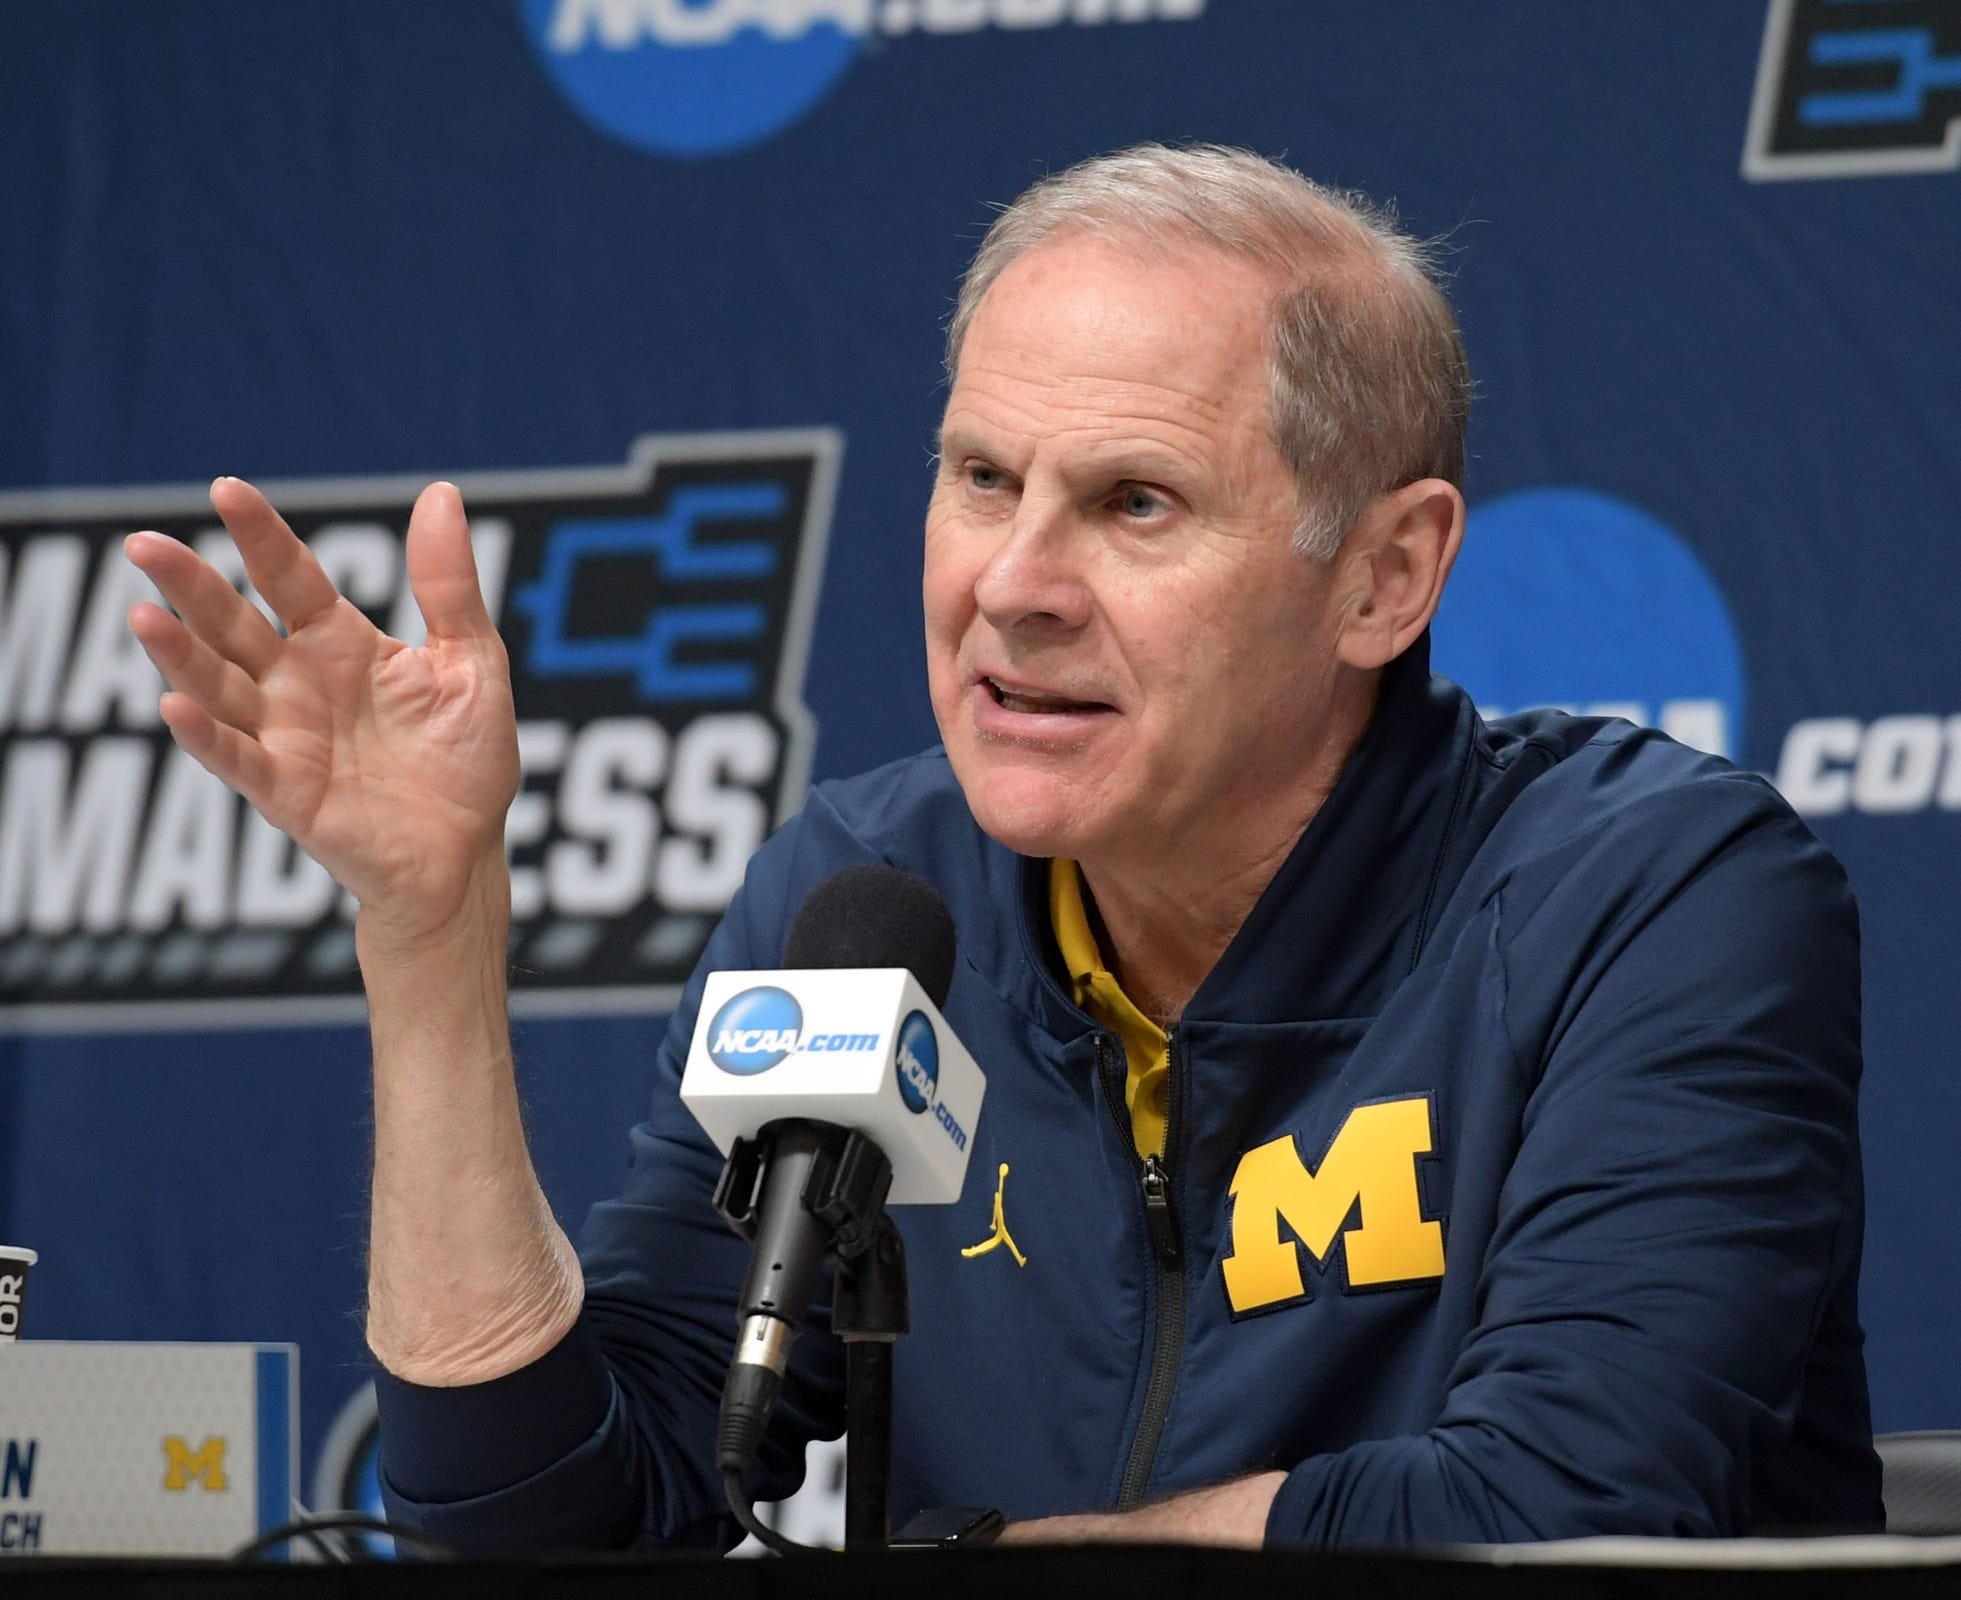 Michigan coach John Beilein speaks in a press conference during practice before the first round of the 2019 NCAA Tournament at Wells Fargo Arena on Wednesday, March 20, 2019.